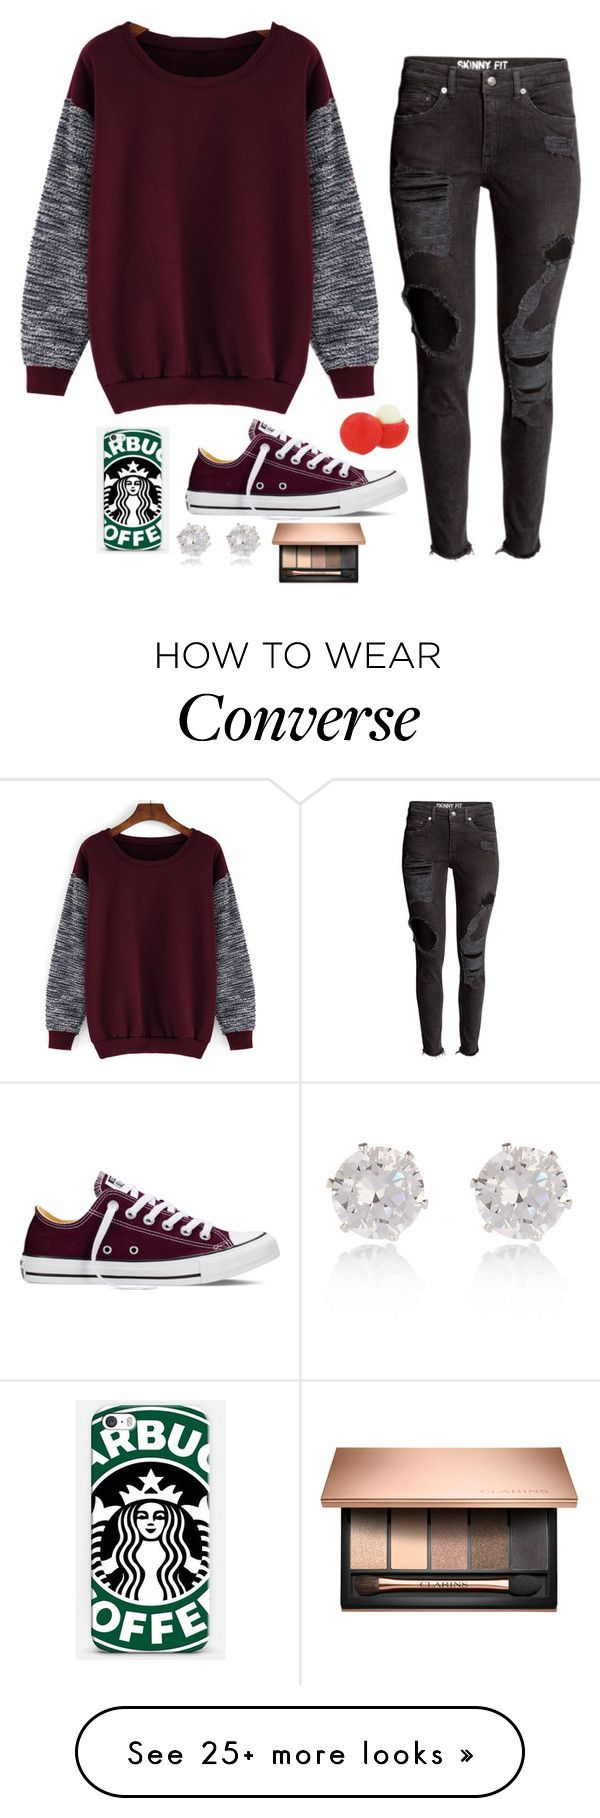 """Untitled #2931"" by if-i-were-famous1 on Polyvore featuring Converse, Samsung, River Island and Eos"